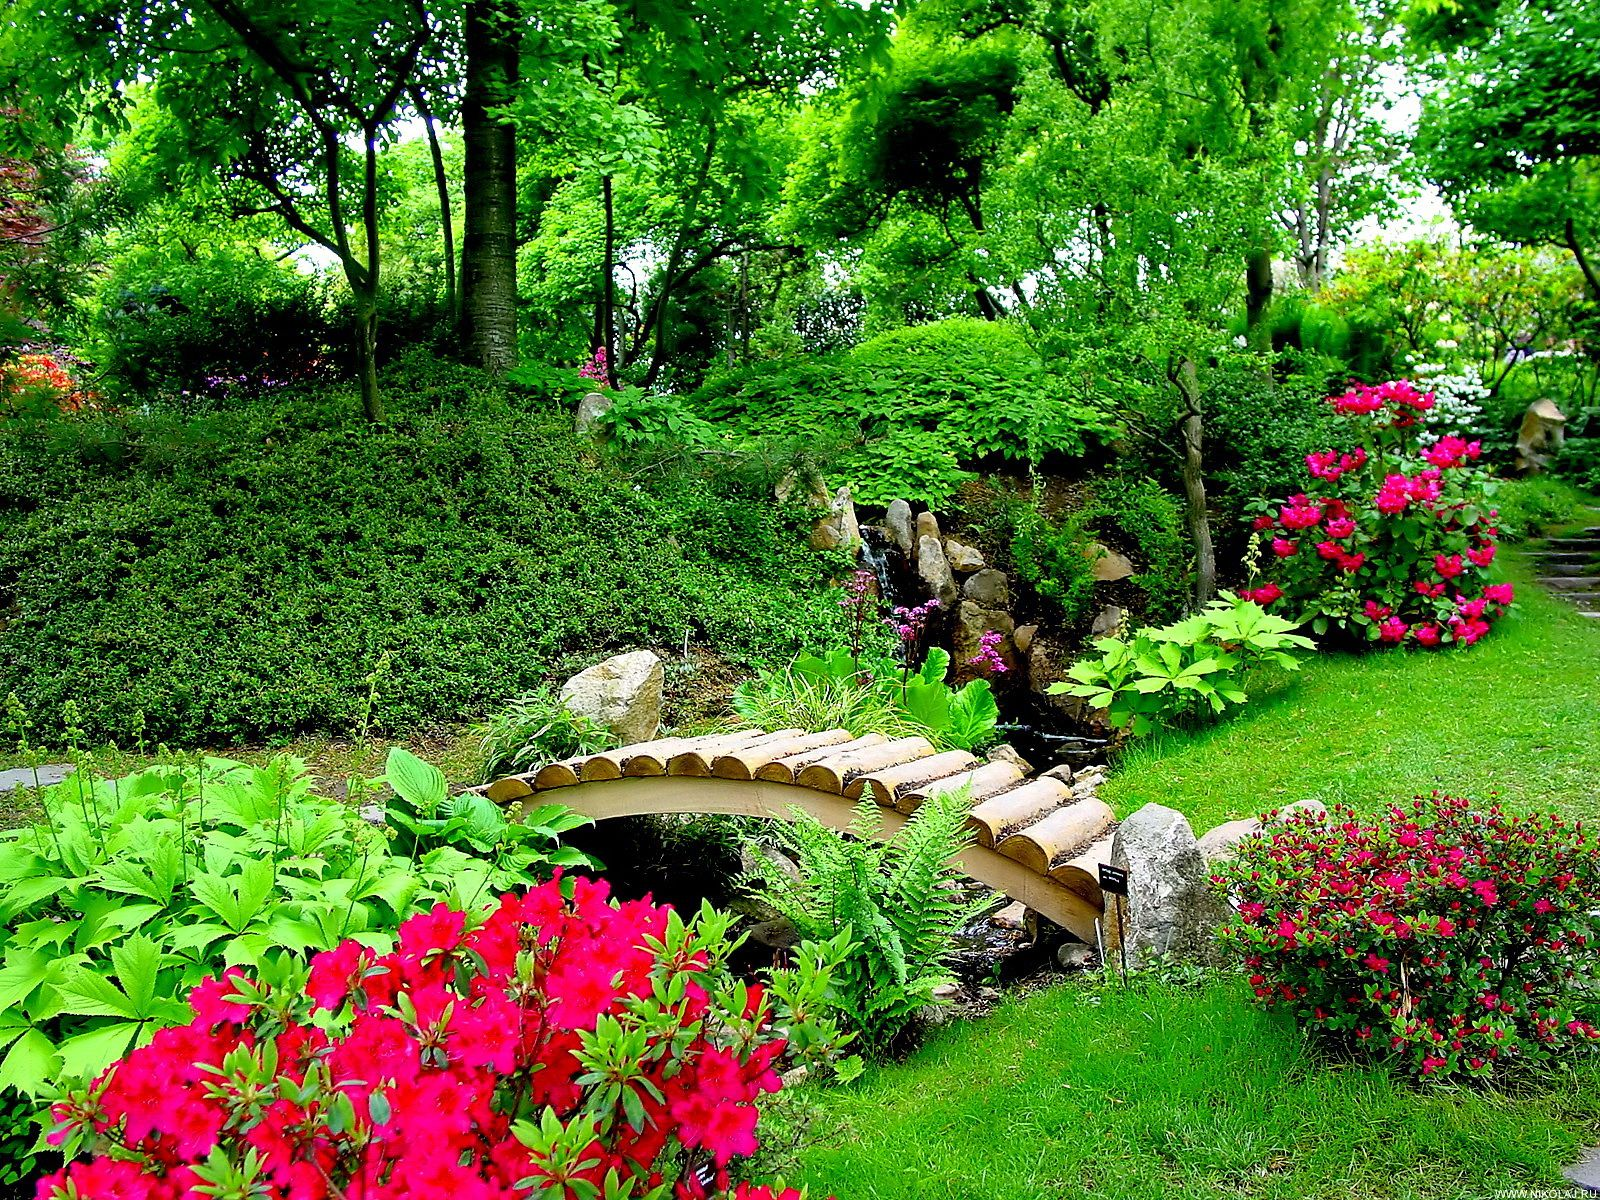 Creative Beautiful Garden Pictures Creative Garden Beautiful Nature Flowers Garden Wallpaper Taman Halaman Dekorasi